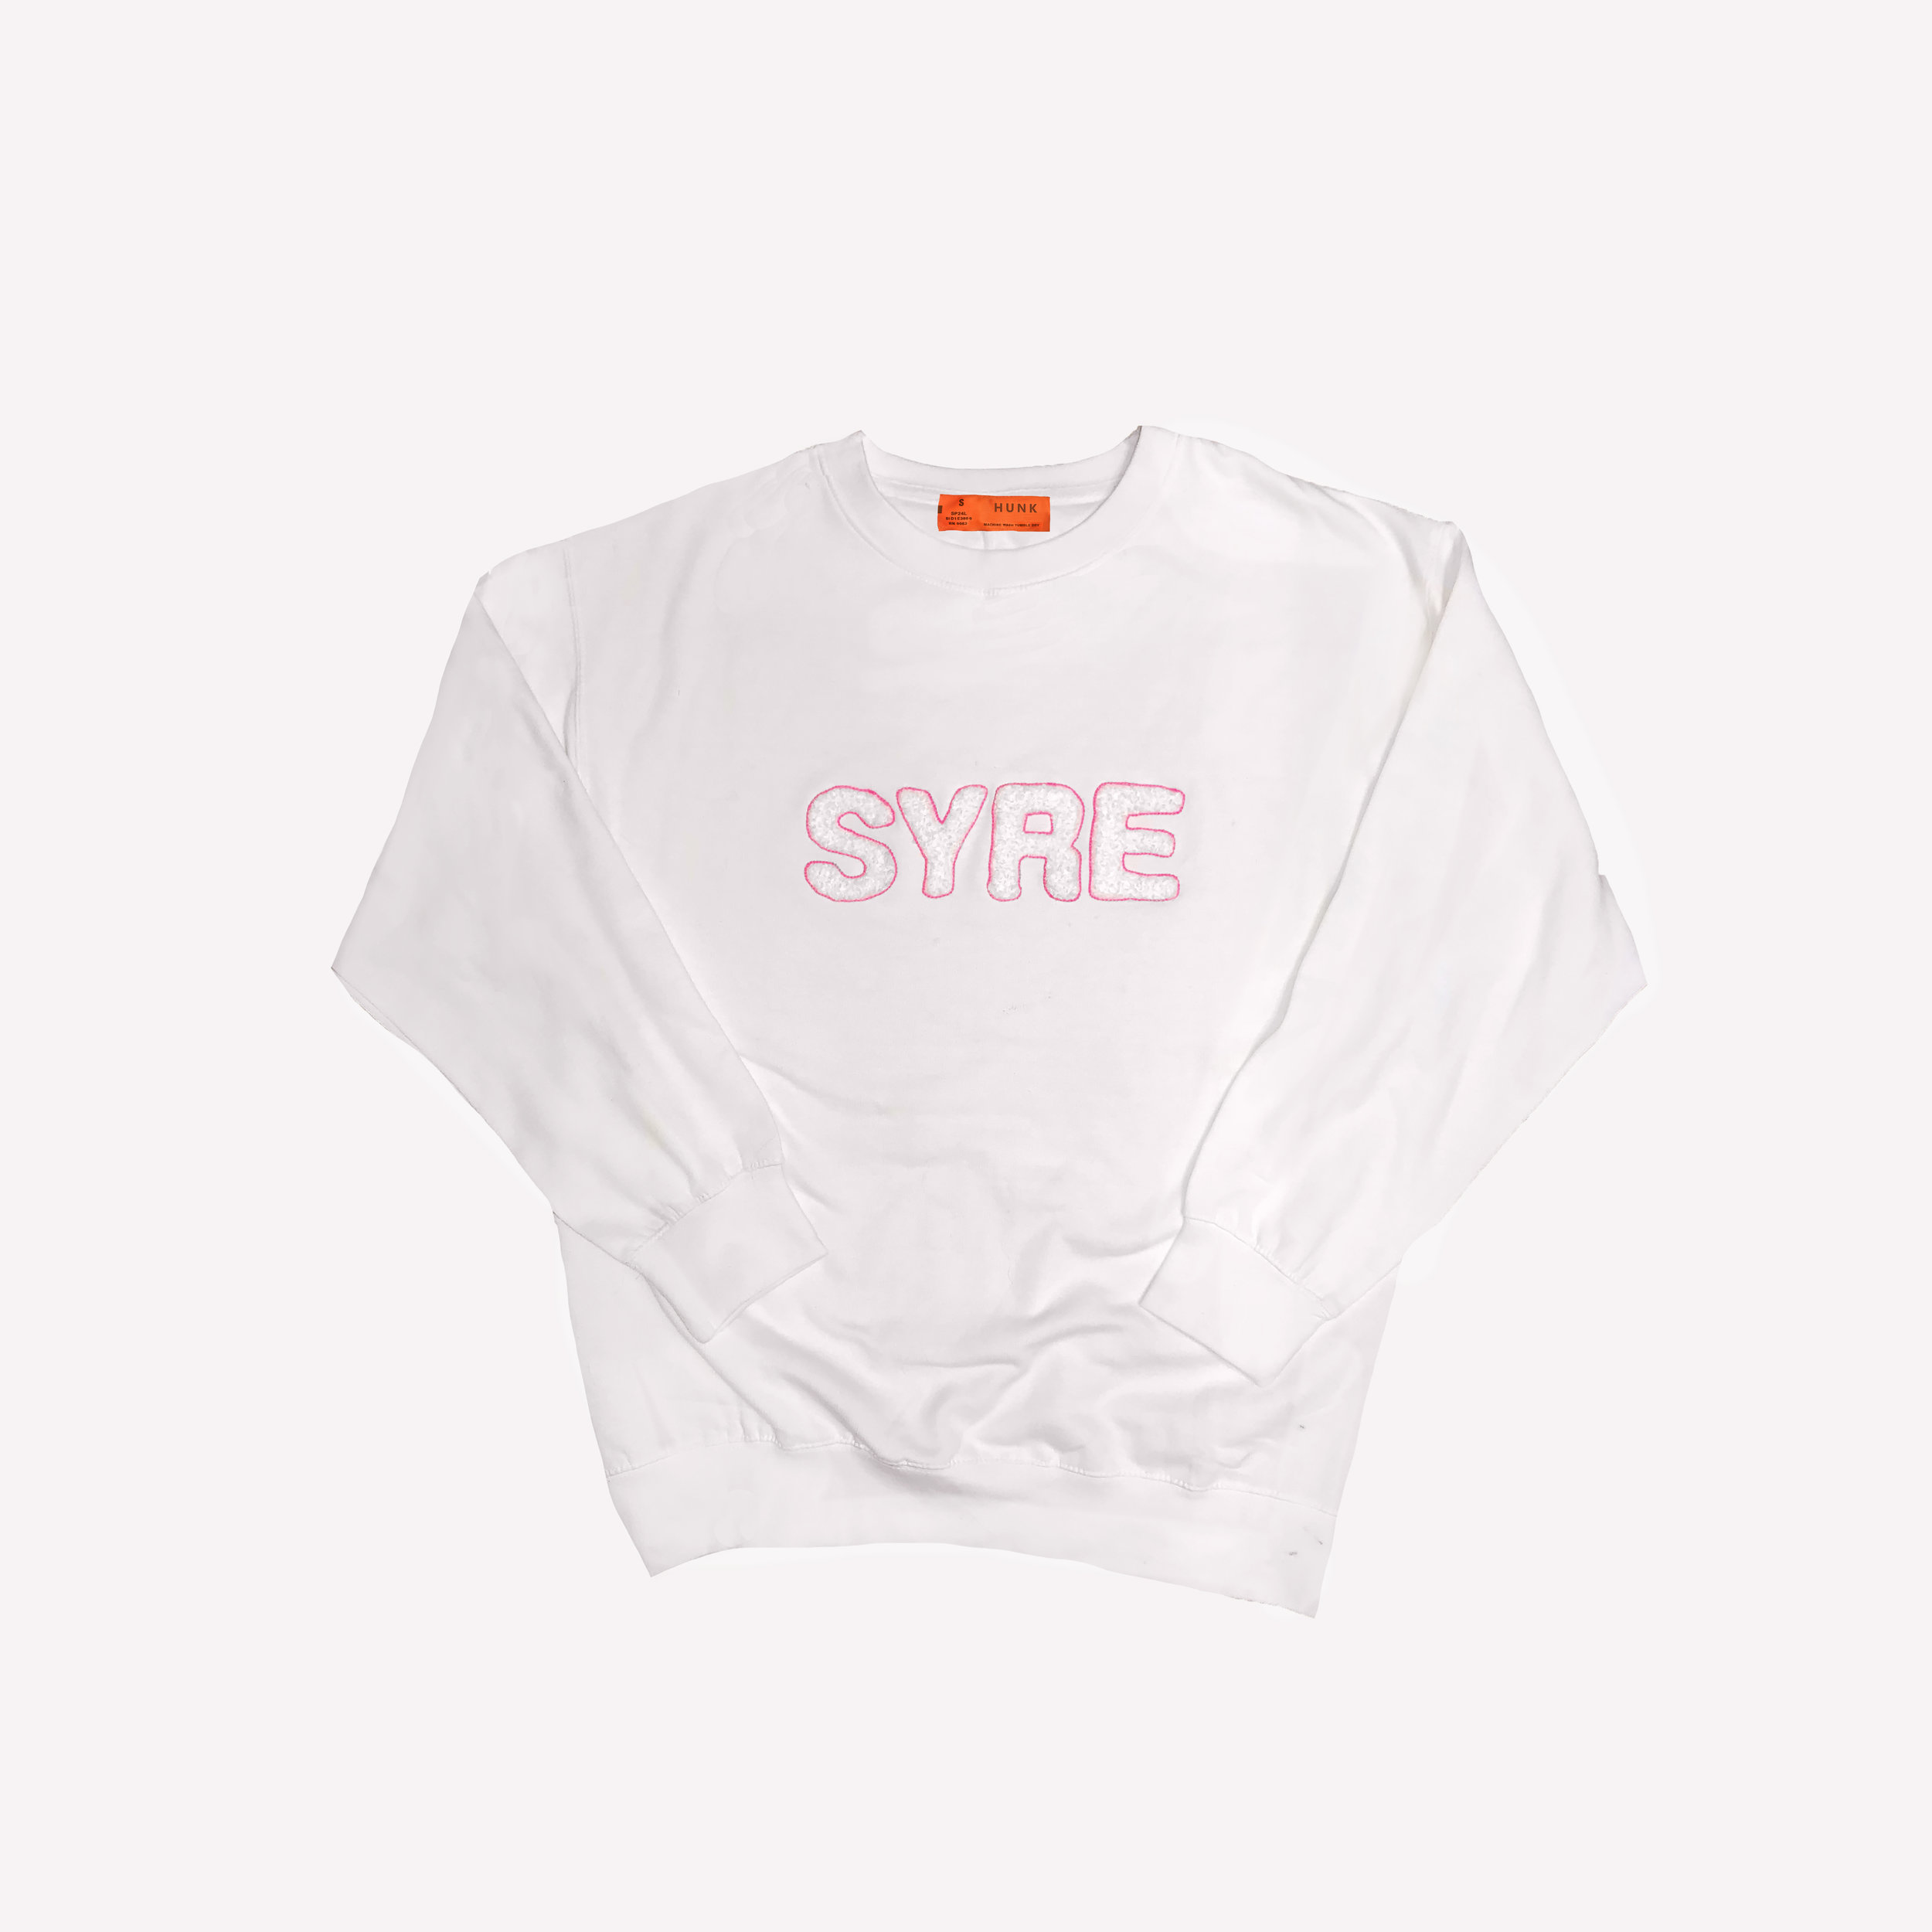 White and Pink Syre Front Flat copy 100.jpg